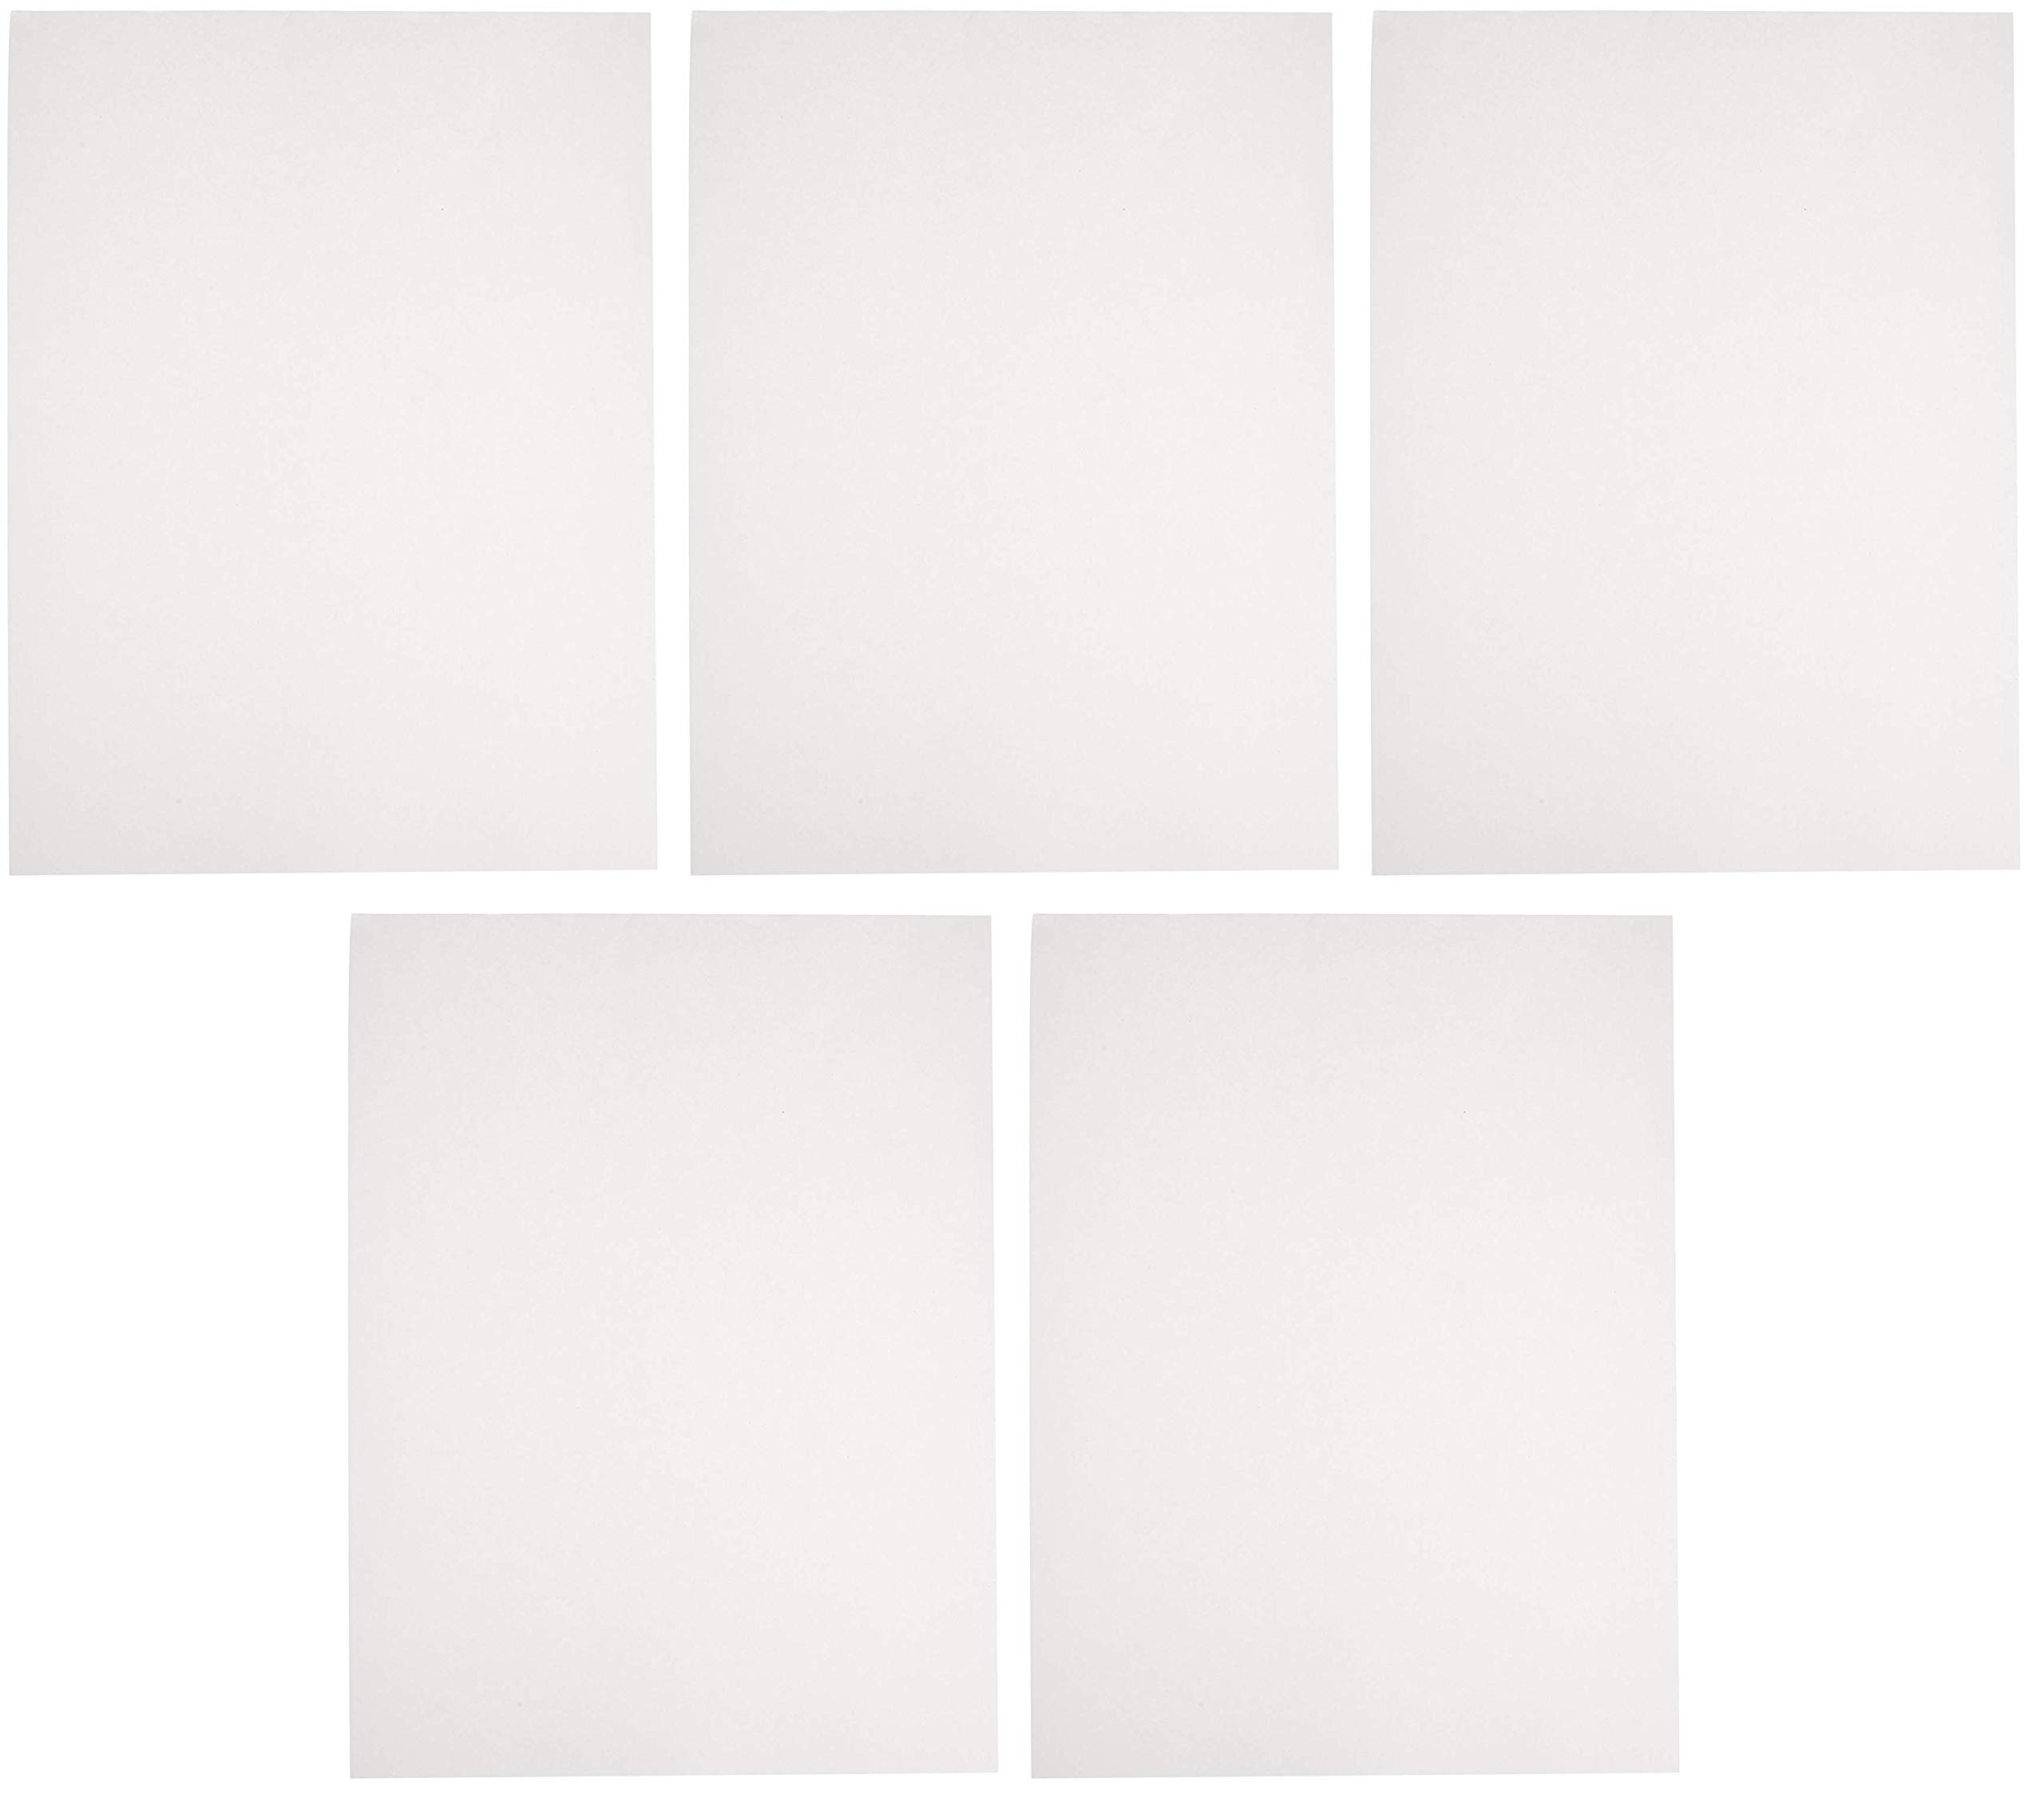 Sax Sulphite Drawing Paper, 50 lb, 12 x 18 Inches, Extra-White, Pack of 500 (Вundlе оf Fіvе)